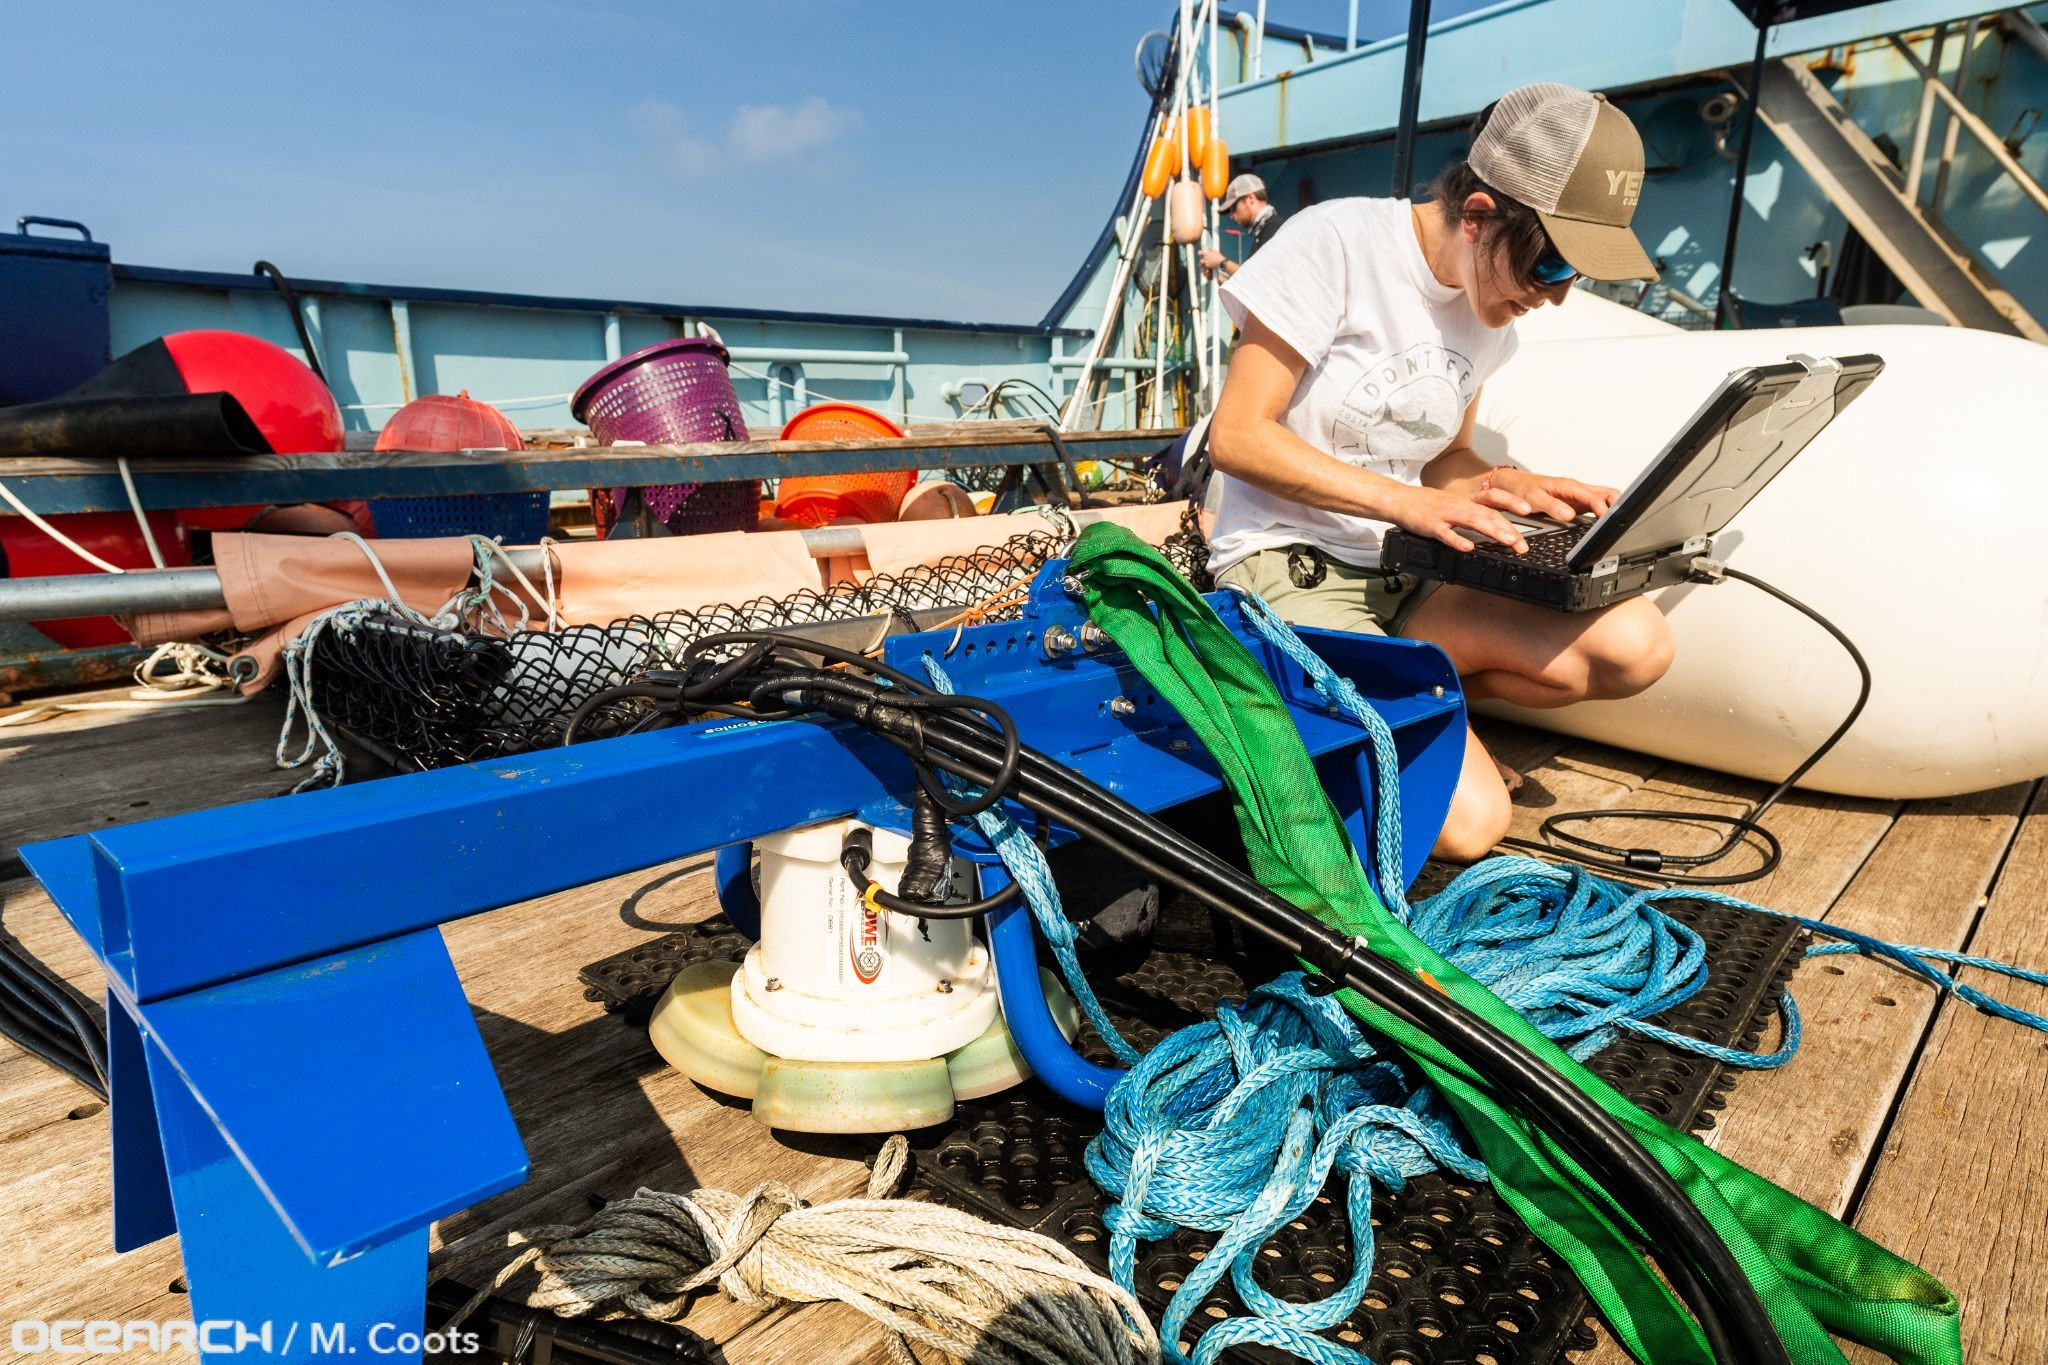 Kyla Drushka connects with the Acoustic Doppler Current Profiler before deploying it over the side of the research vessel OCEARCH.